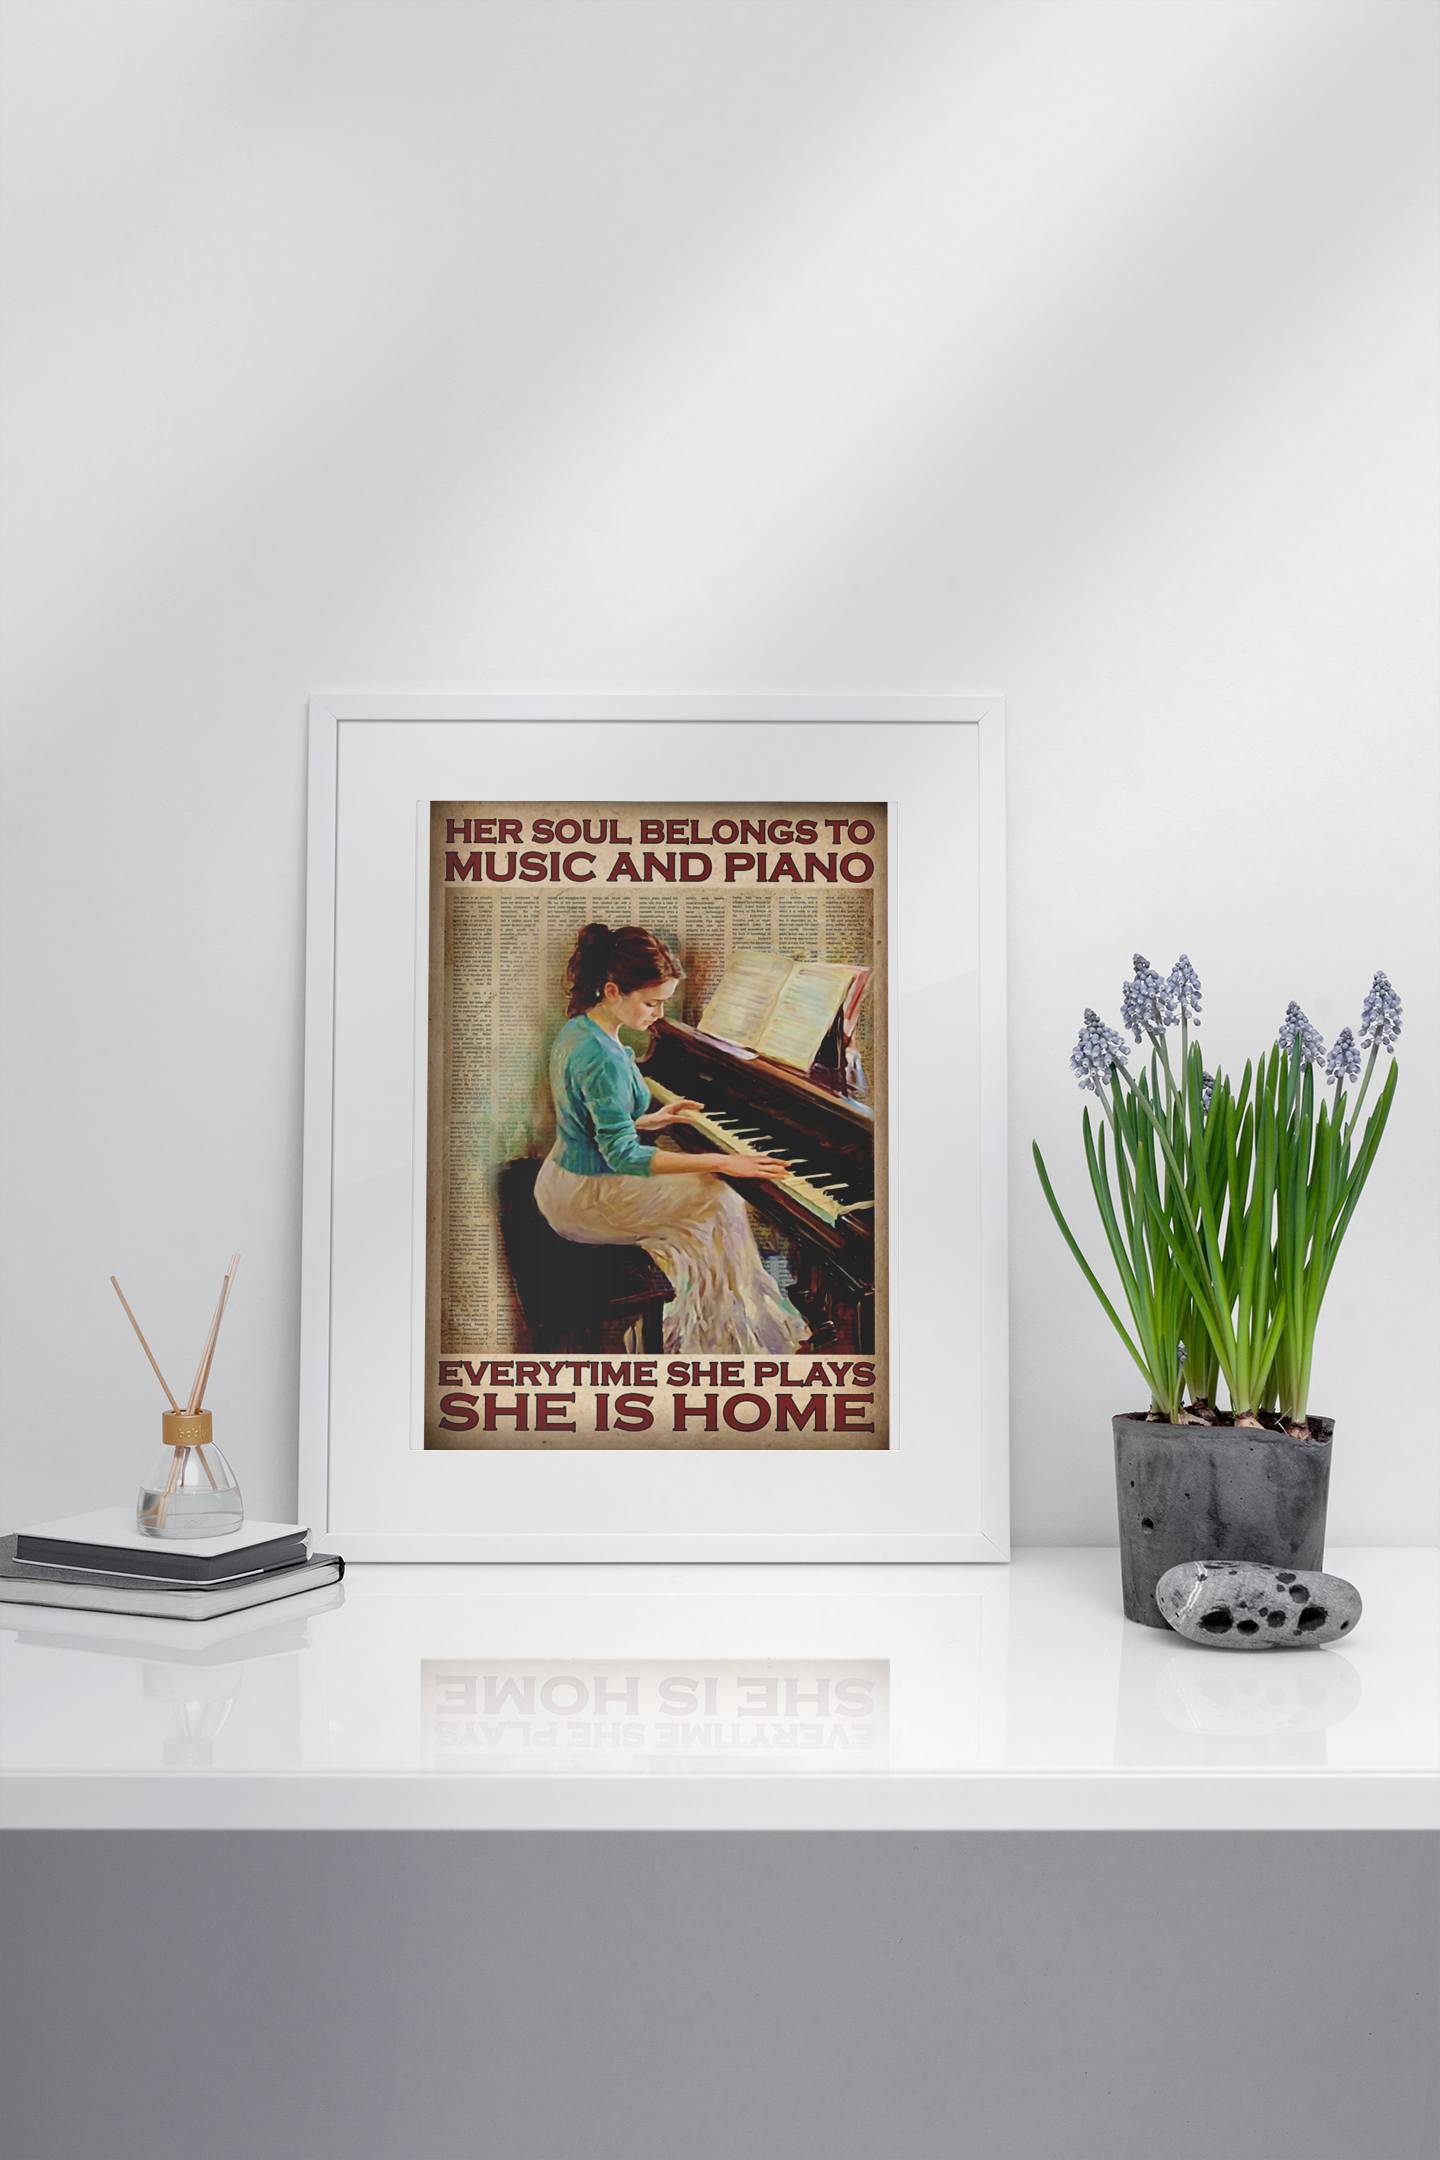 Her soul belongs to music and piano everytime she plays she is home poster